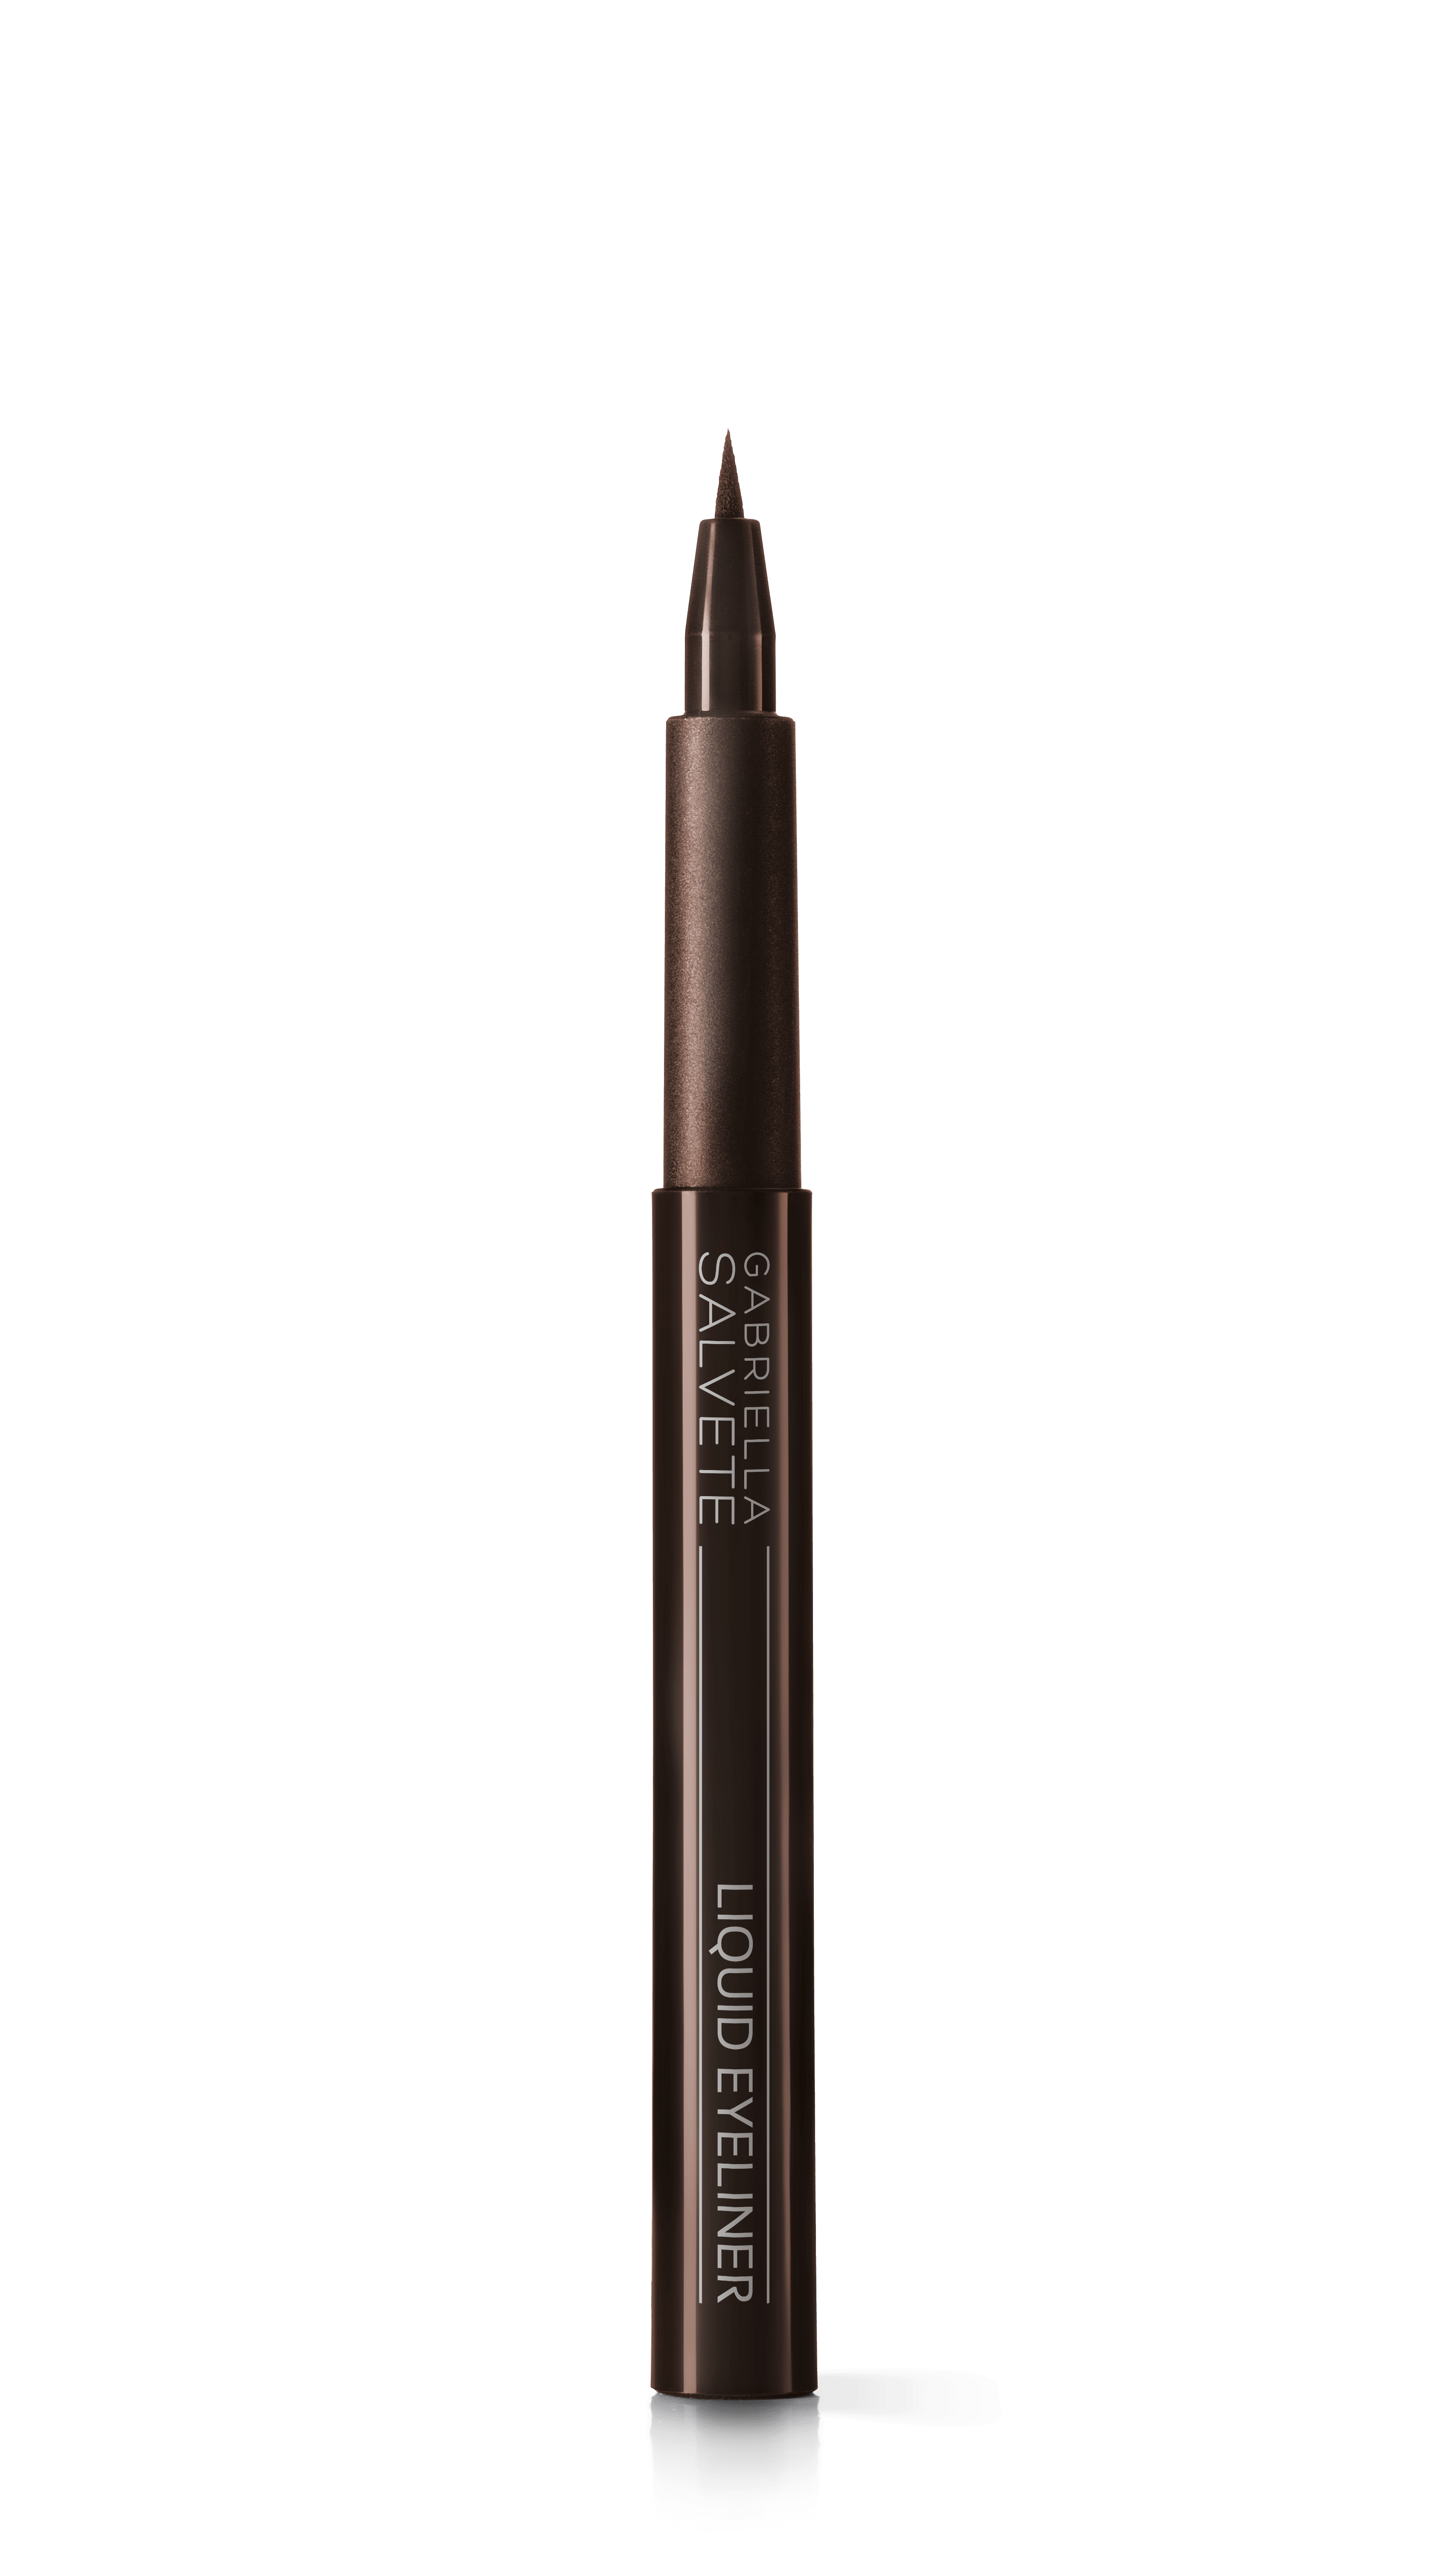 Gabriella Salvete Tekuté očné linky Liquid Eyeliner in Pen 02 Brown